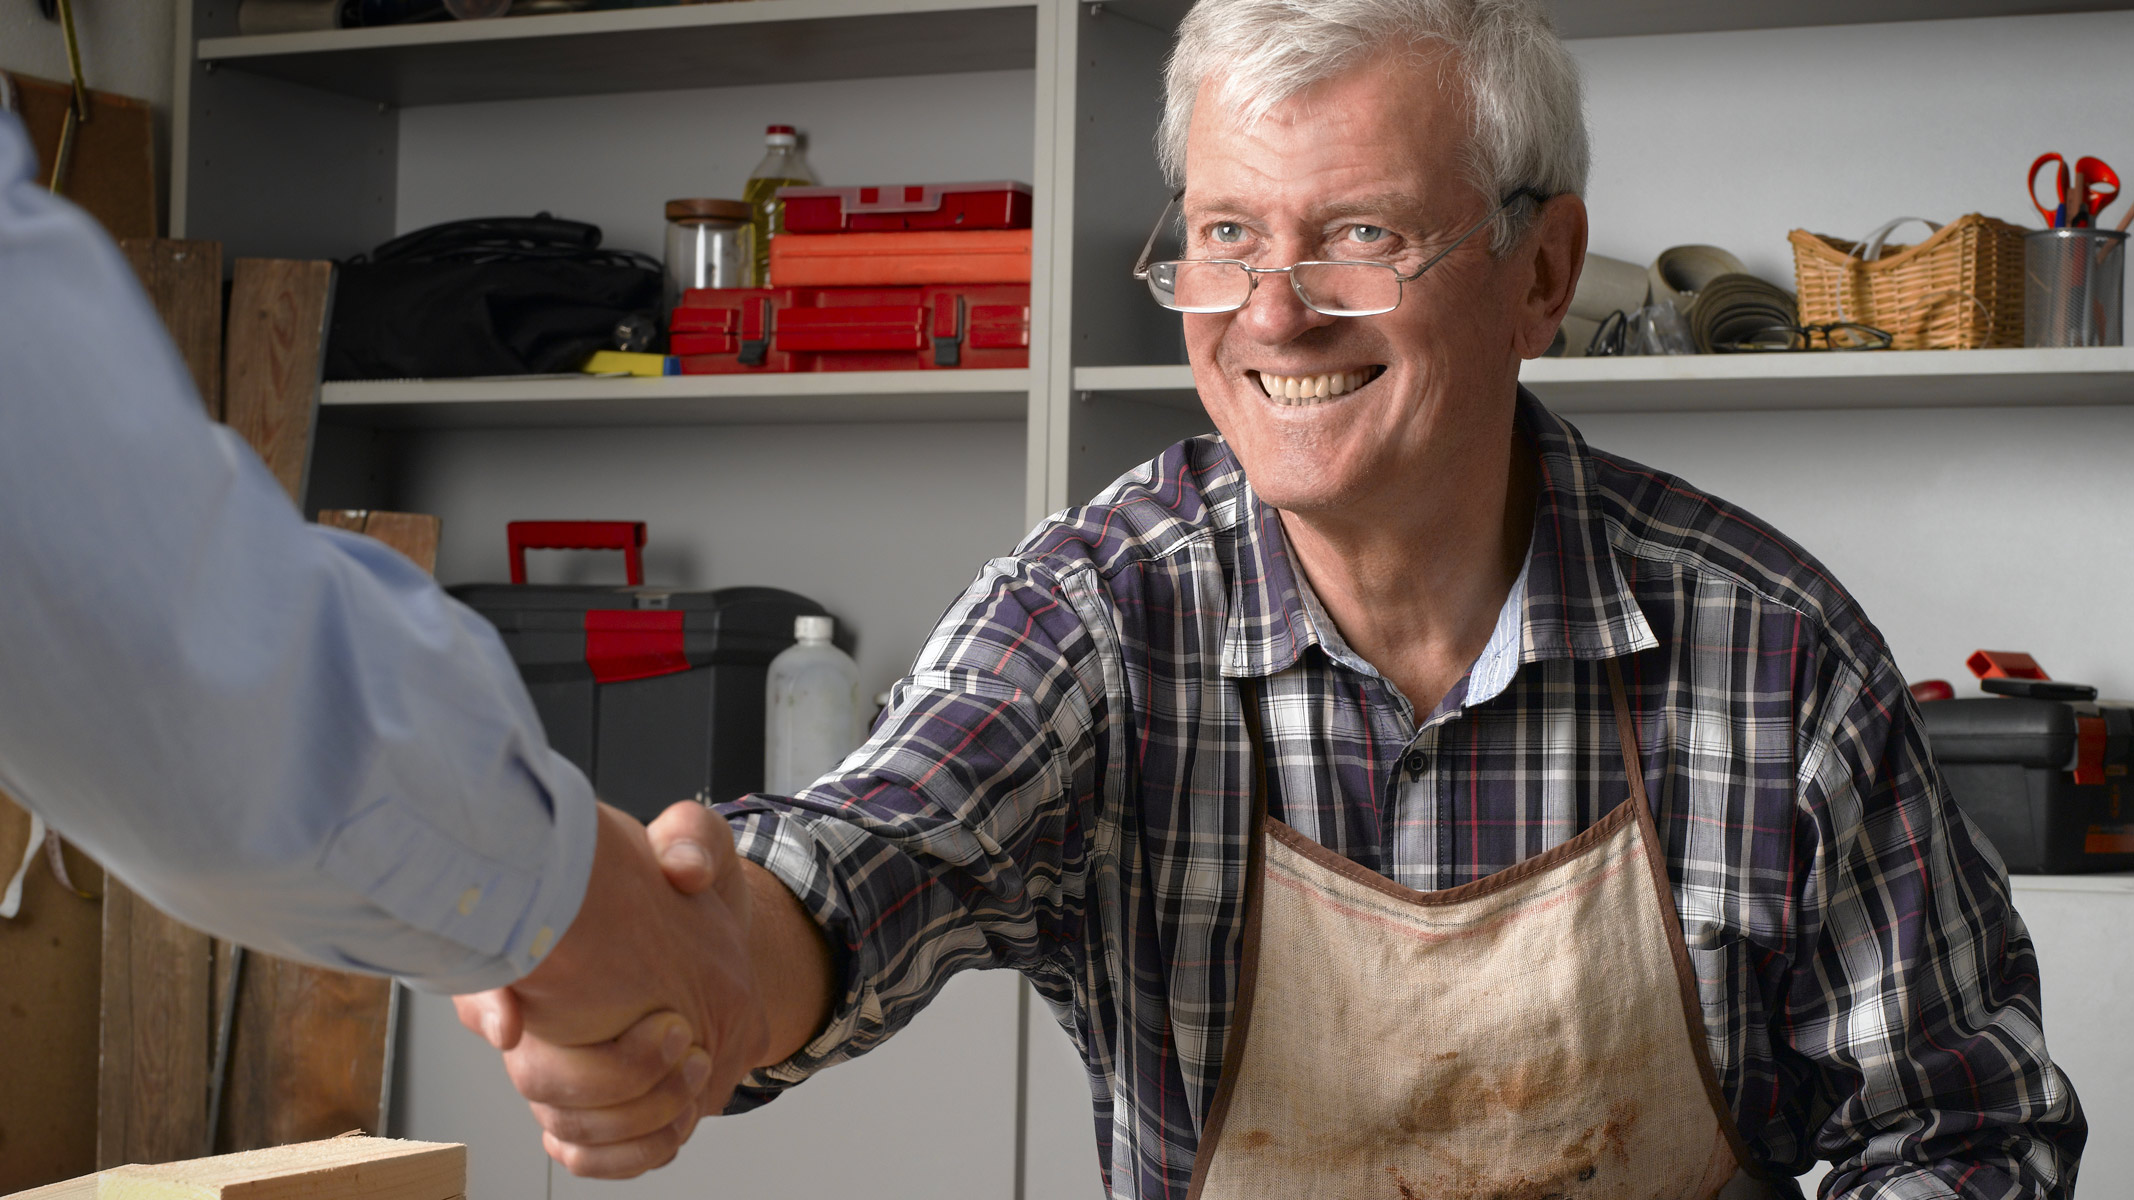 Business owner shaking customer's hand inside his repair shop